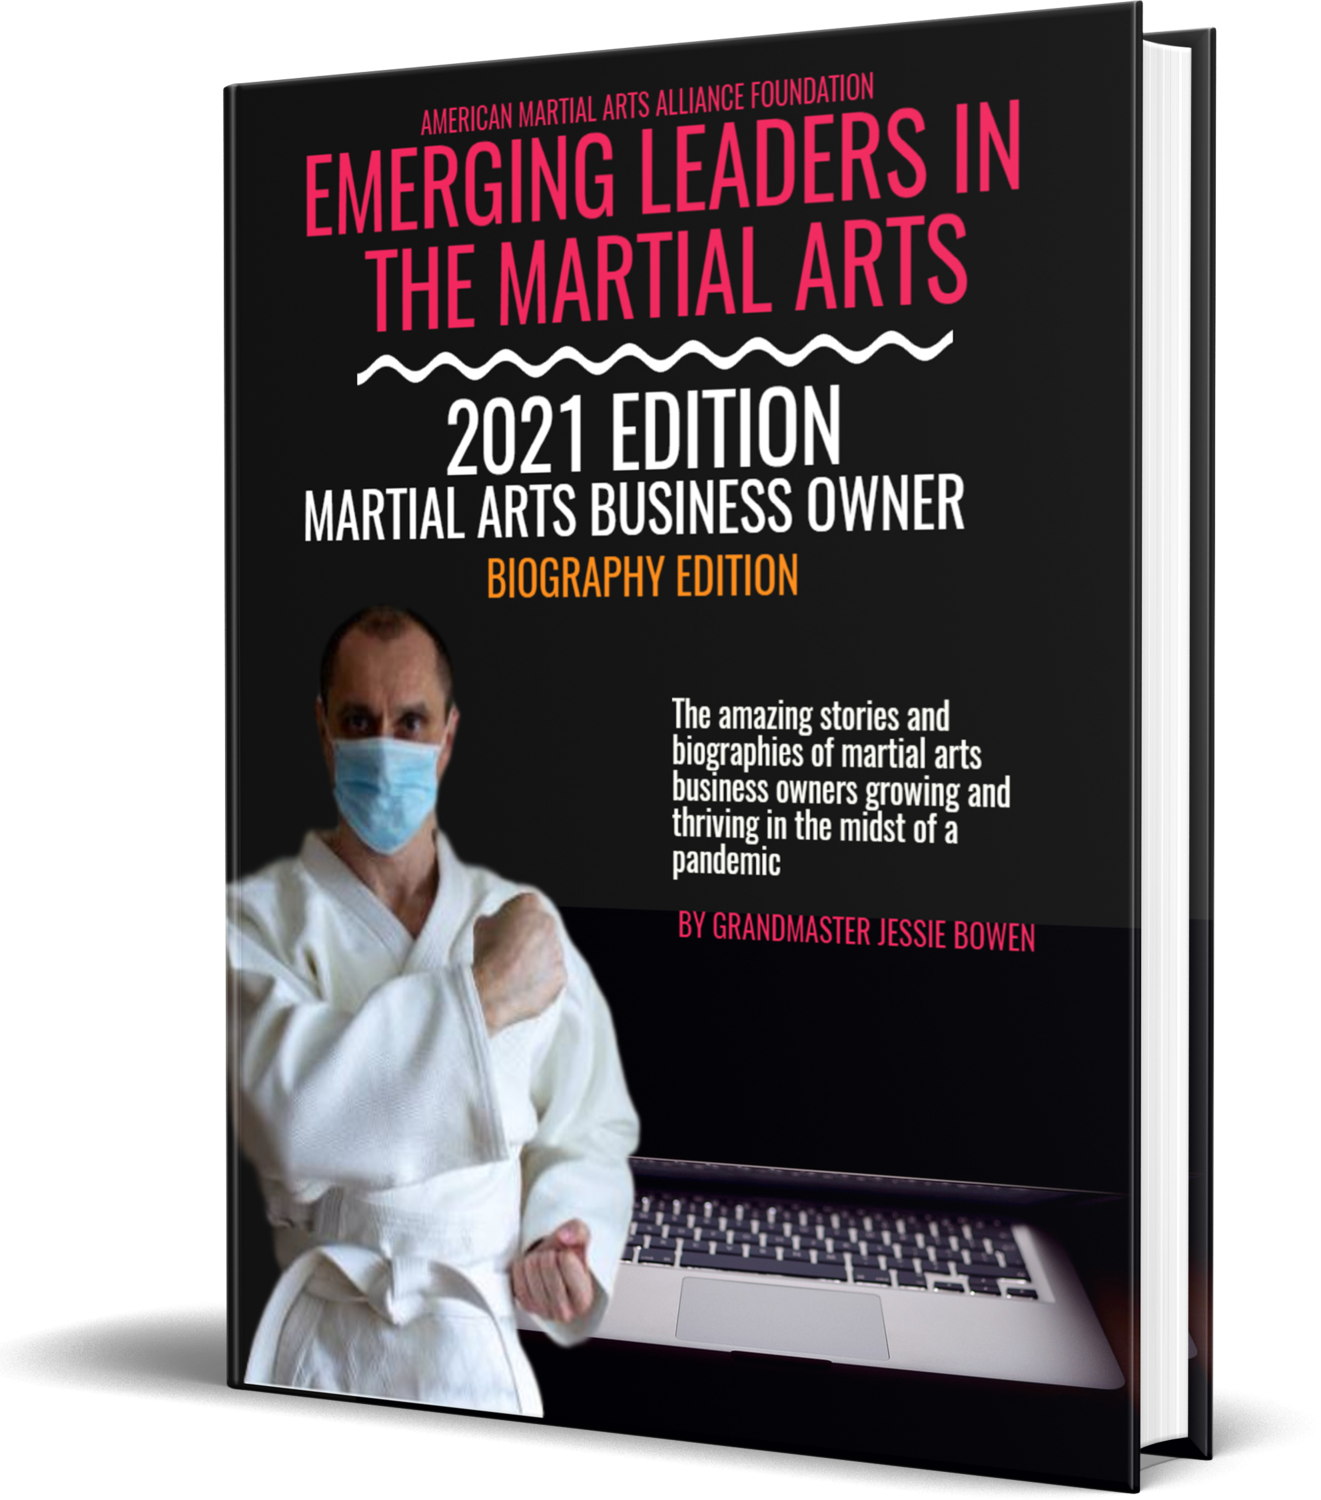 Emerging Leaders in the Martial Arts Biography Book 2021